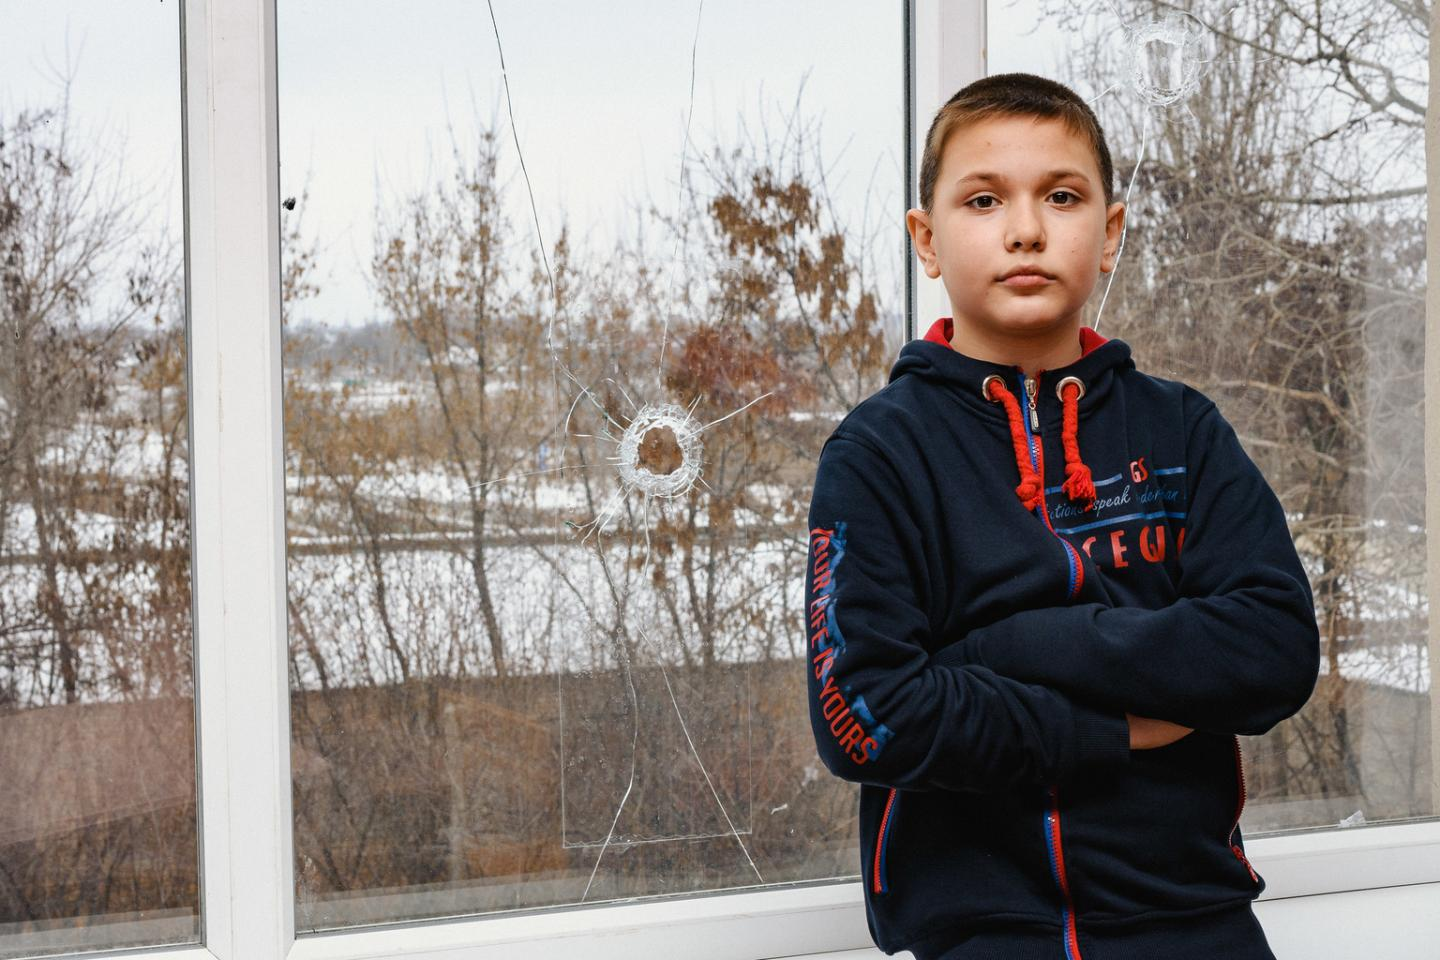 Fifth grade student Rodion, 11, stands by a window damaged by a stray bullet in a classroom at school No. 2, Marinka, Donetsk region, Ukraine